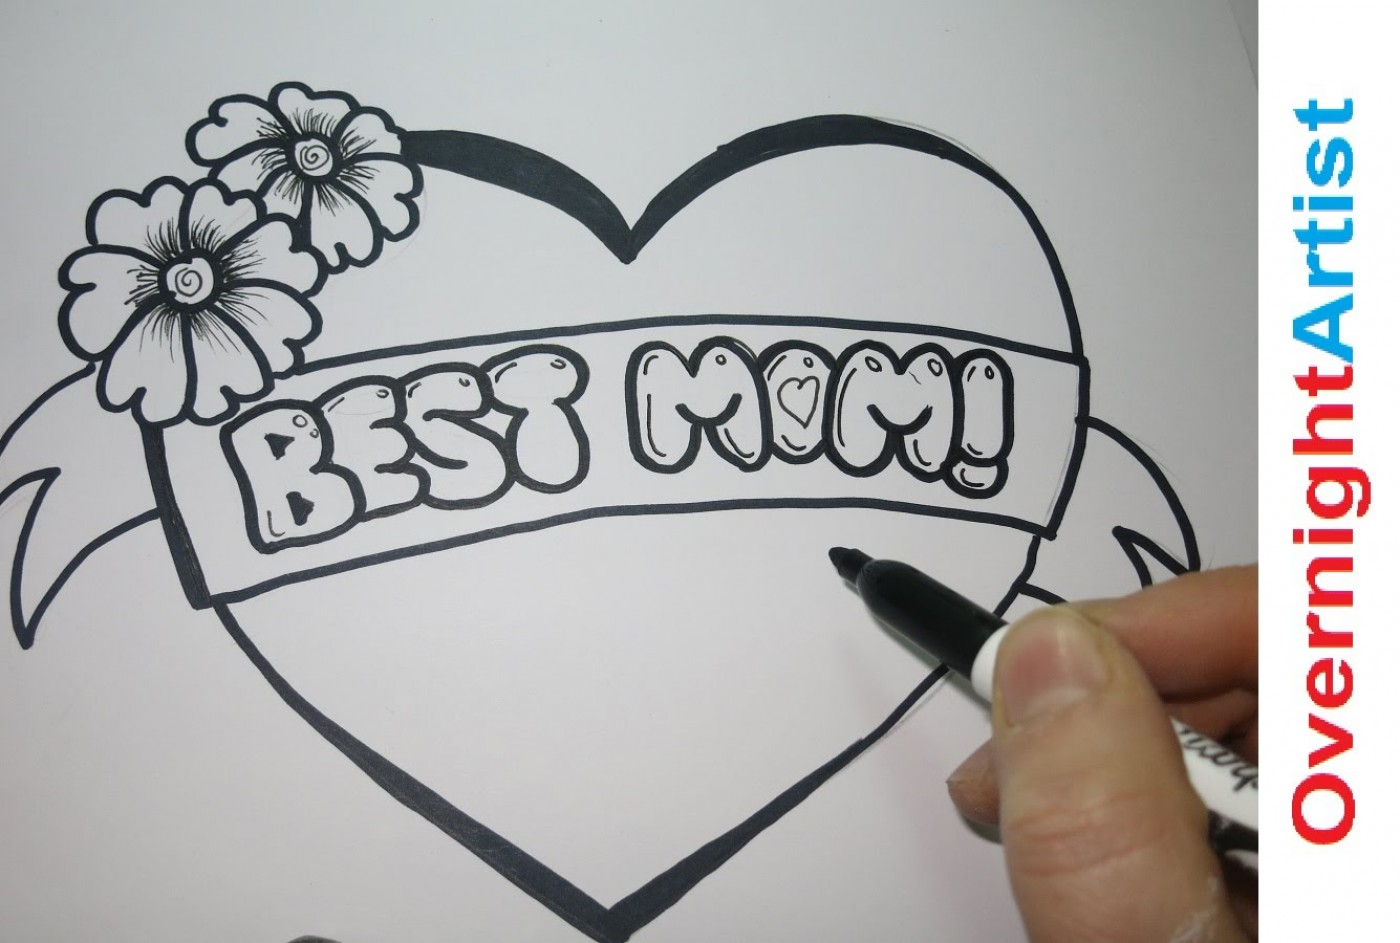 006 Things To Draw For Your Mom On Her Birthday 169857 How Write Page Research Paper In One Phenomenal A 10 Night 1400